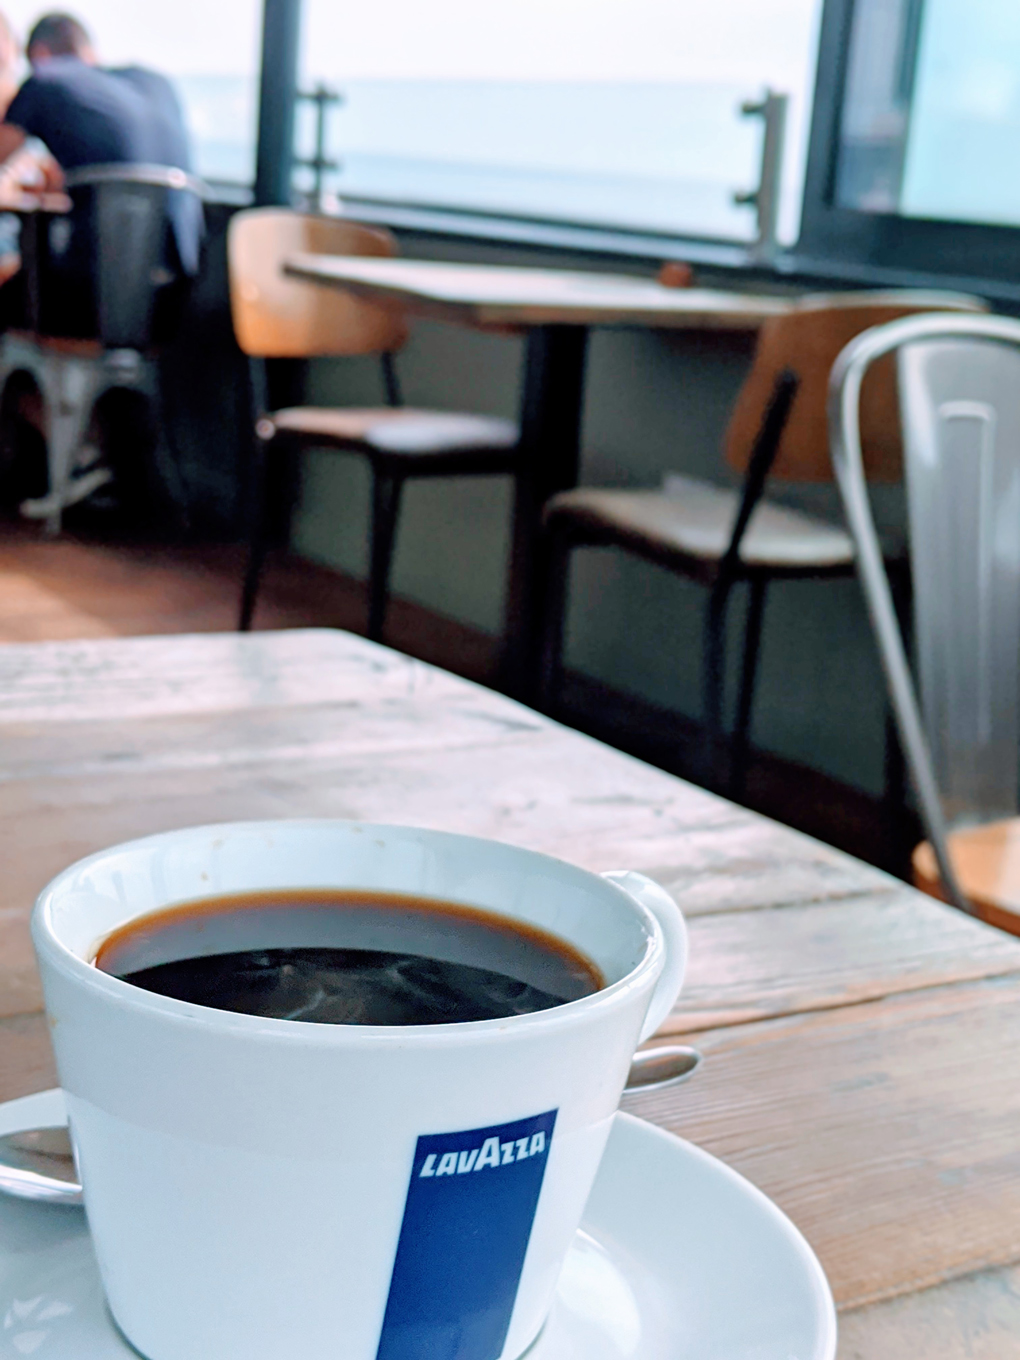 Lavazza coffee in seaside cafe